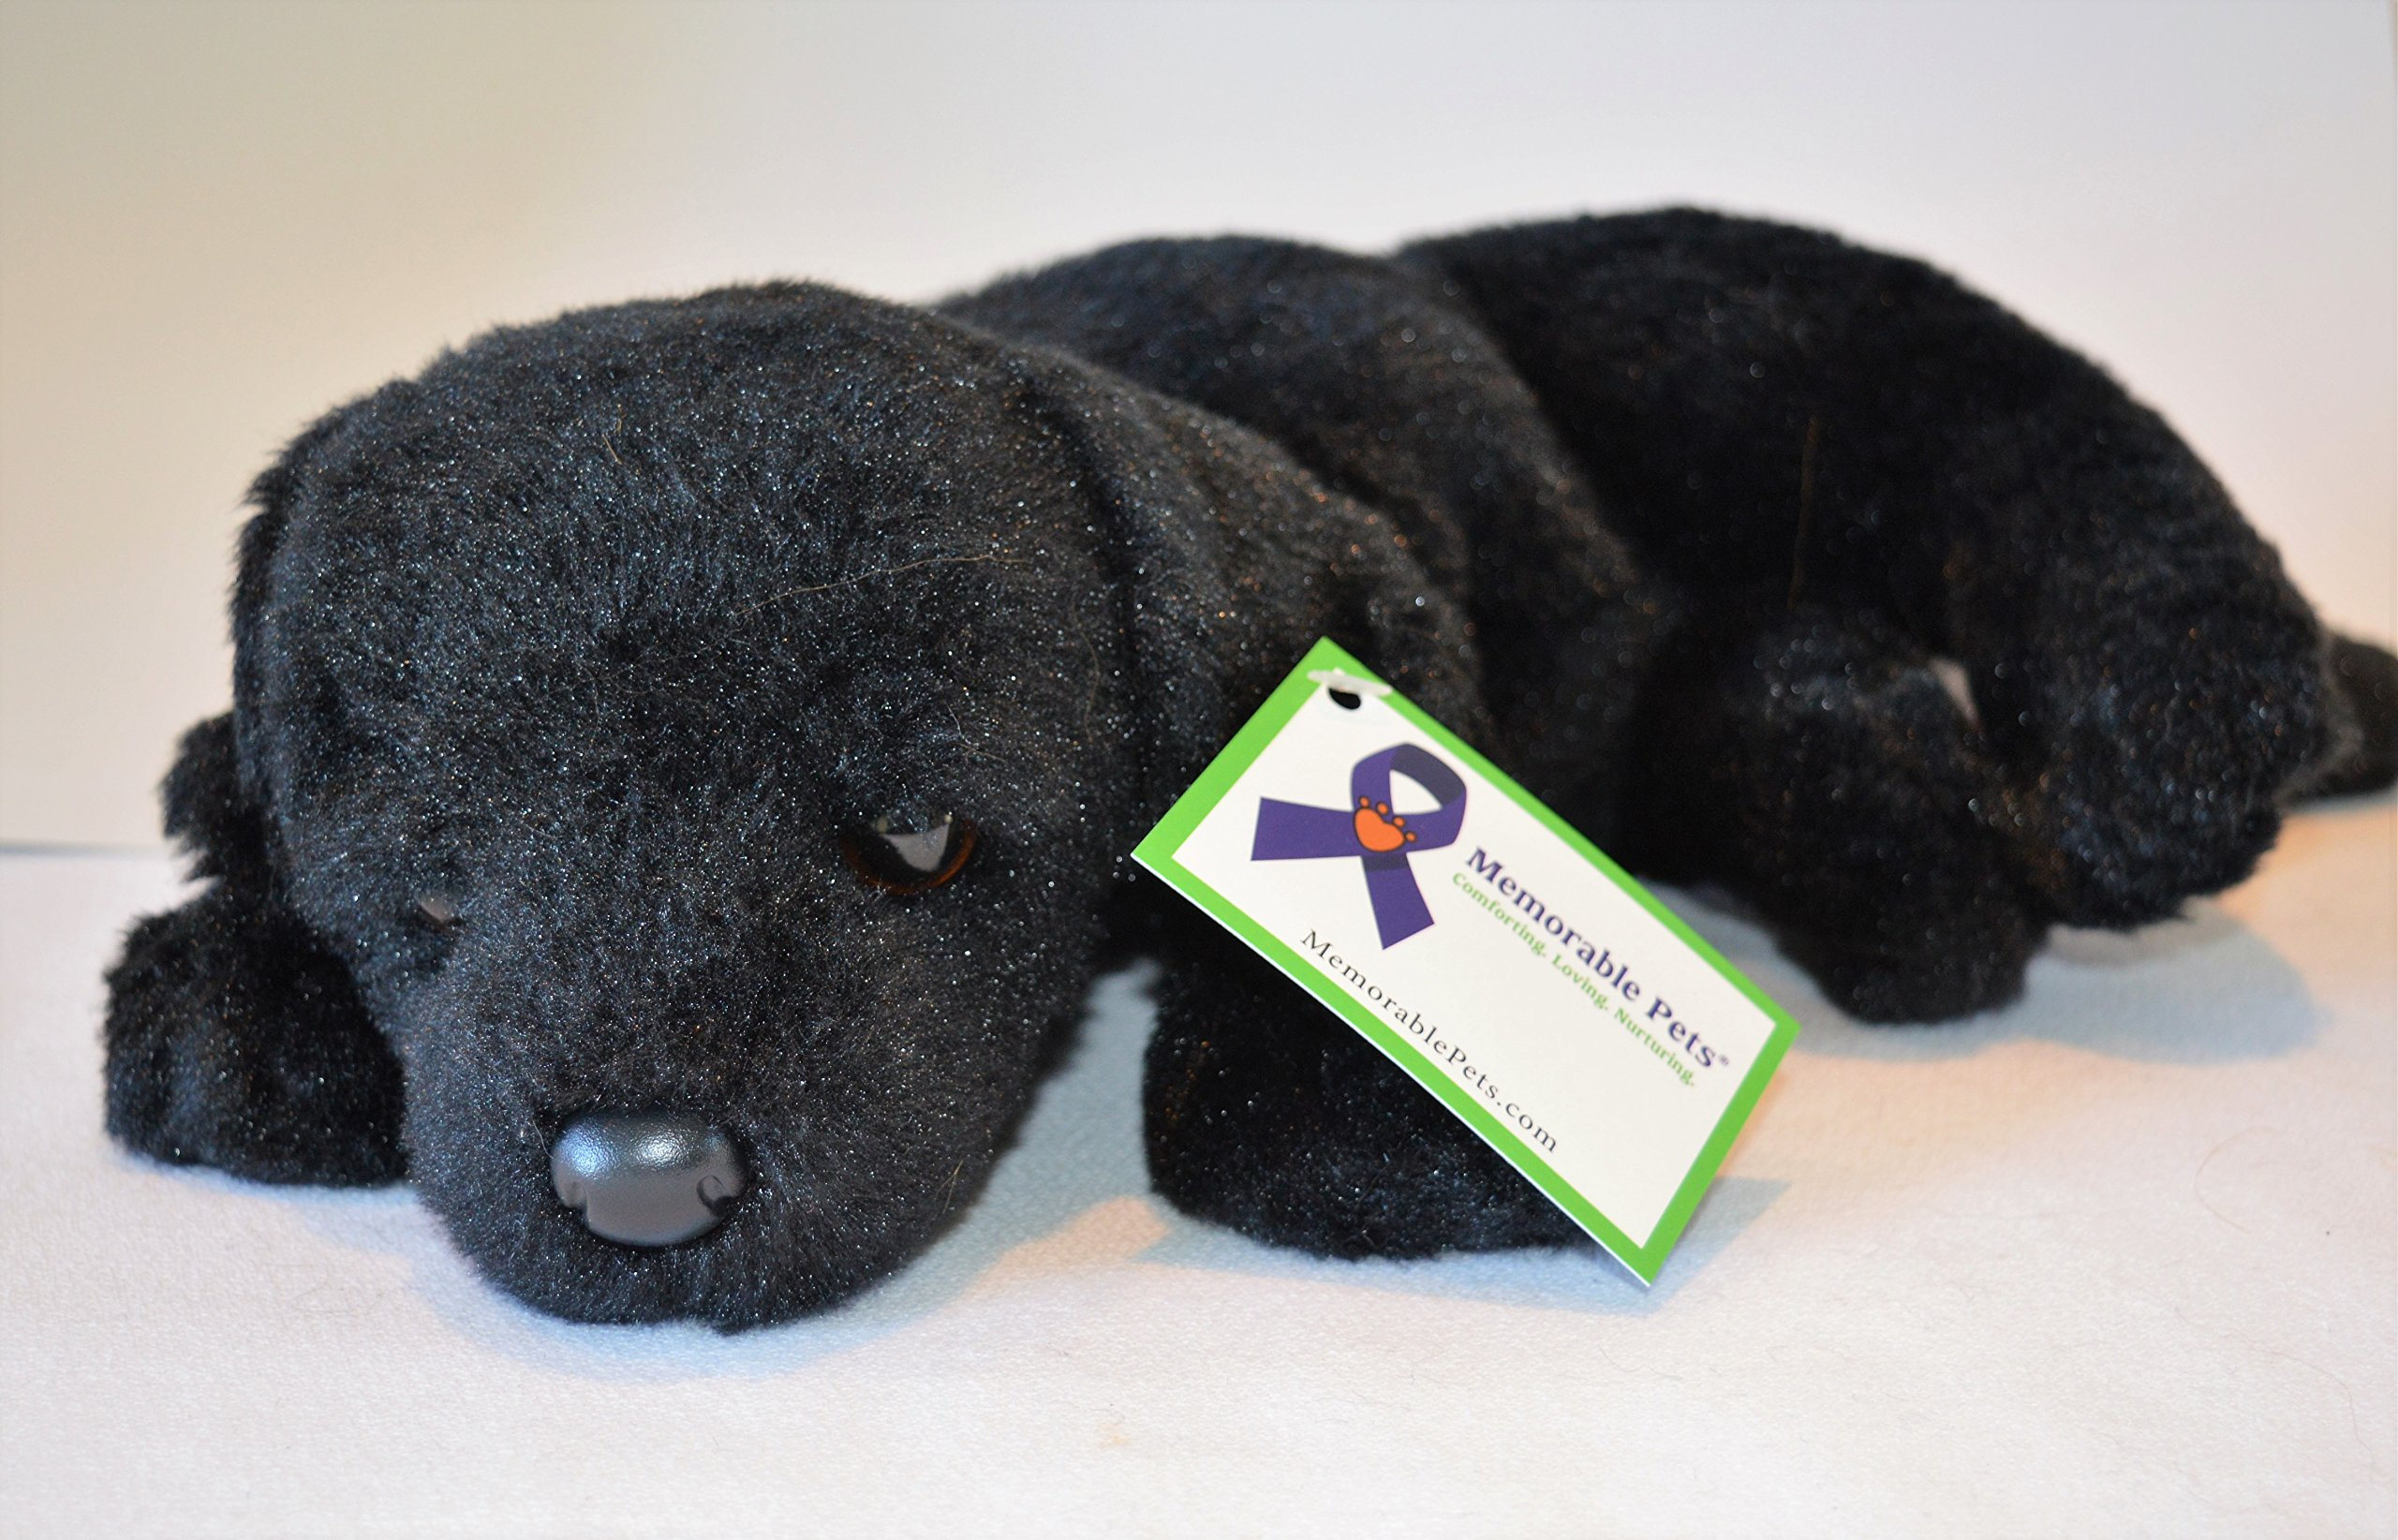 Reclining Black Lab Puppy - Stuffed Animal Therapy for People with Memory Loss from Aging and Caregivers